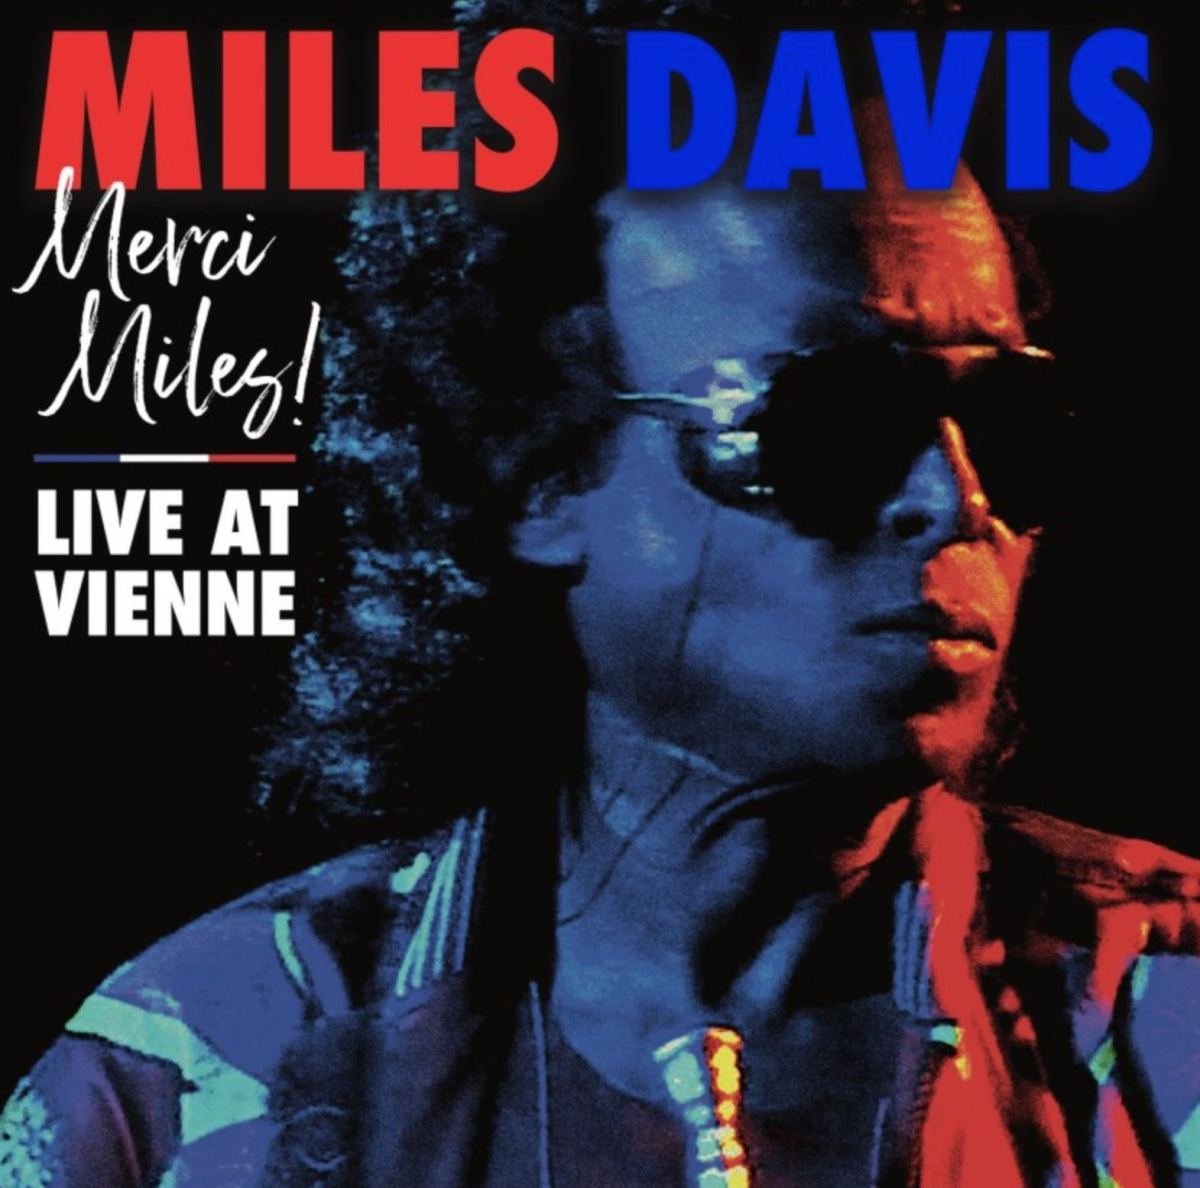 One of Miles Davis's final performances sees official release, includes songs by Prince and Michael Jackson | Boing Boing